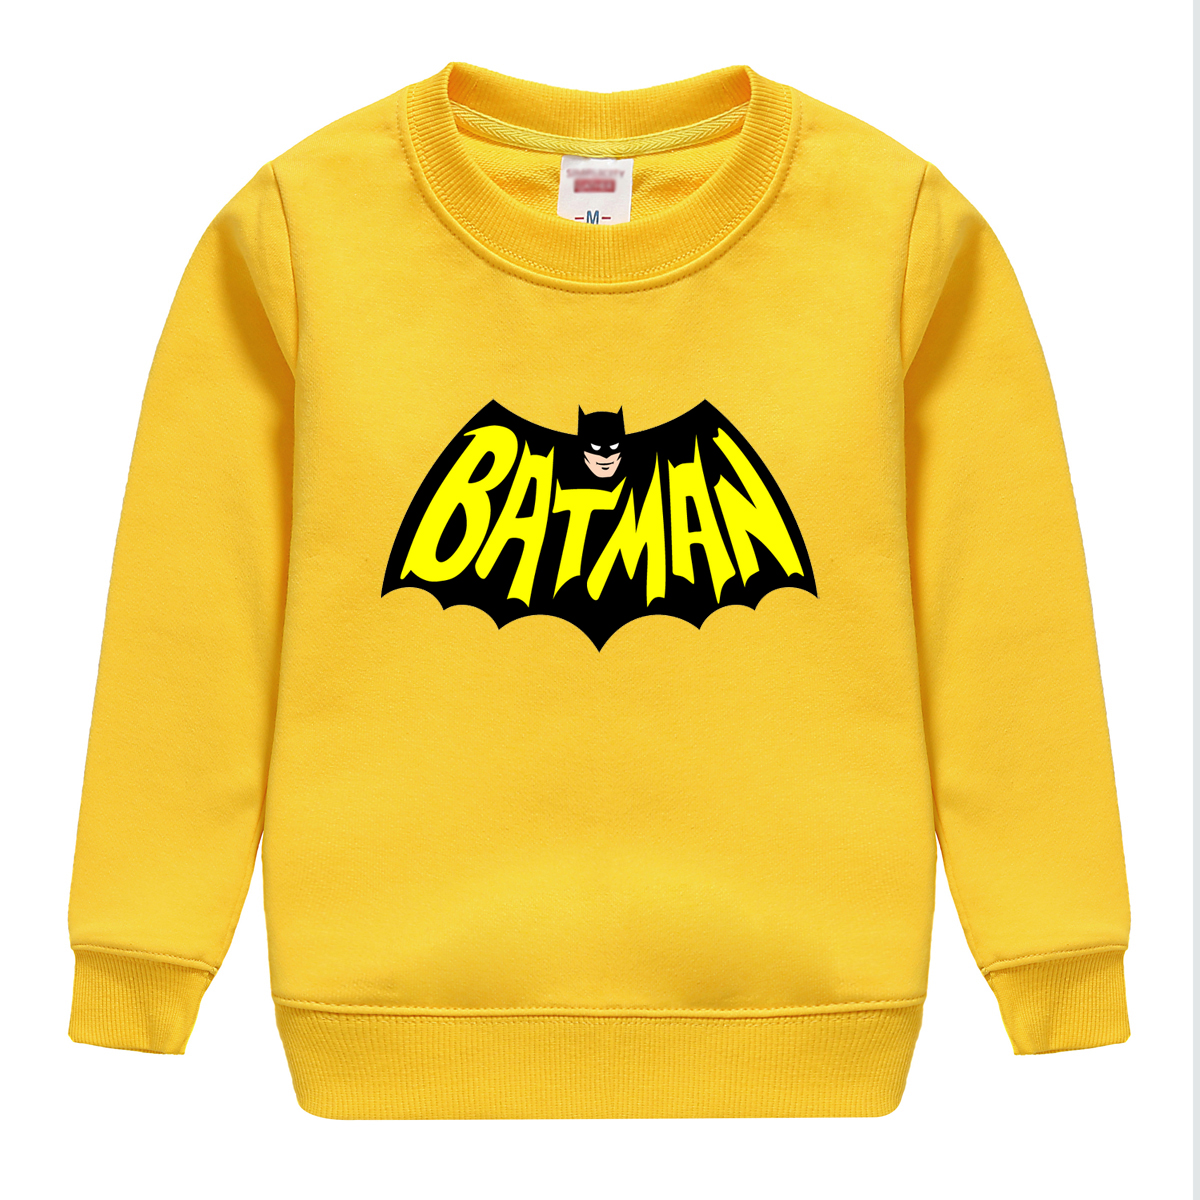 BATMAN pattern autumn long sleeve sweatshirt for girls boys shirts children tops children's sweatshirts baby clothing